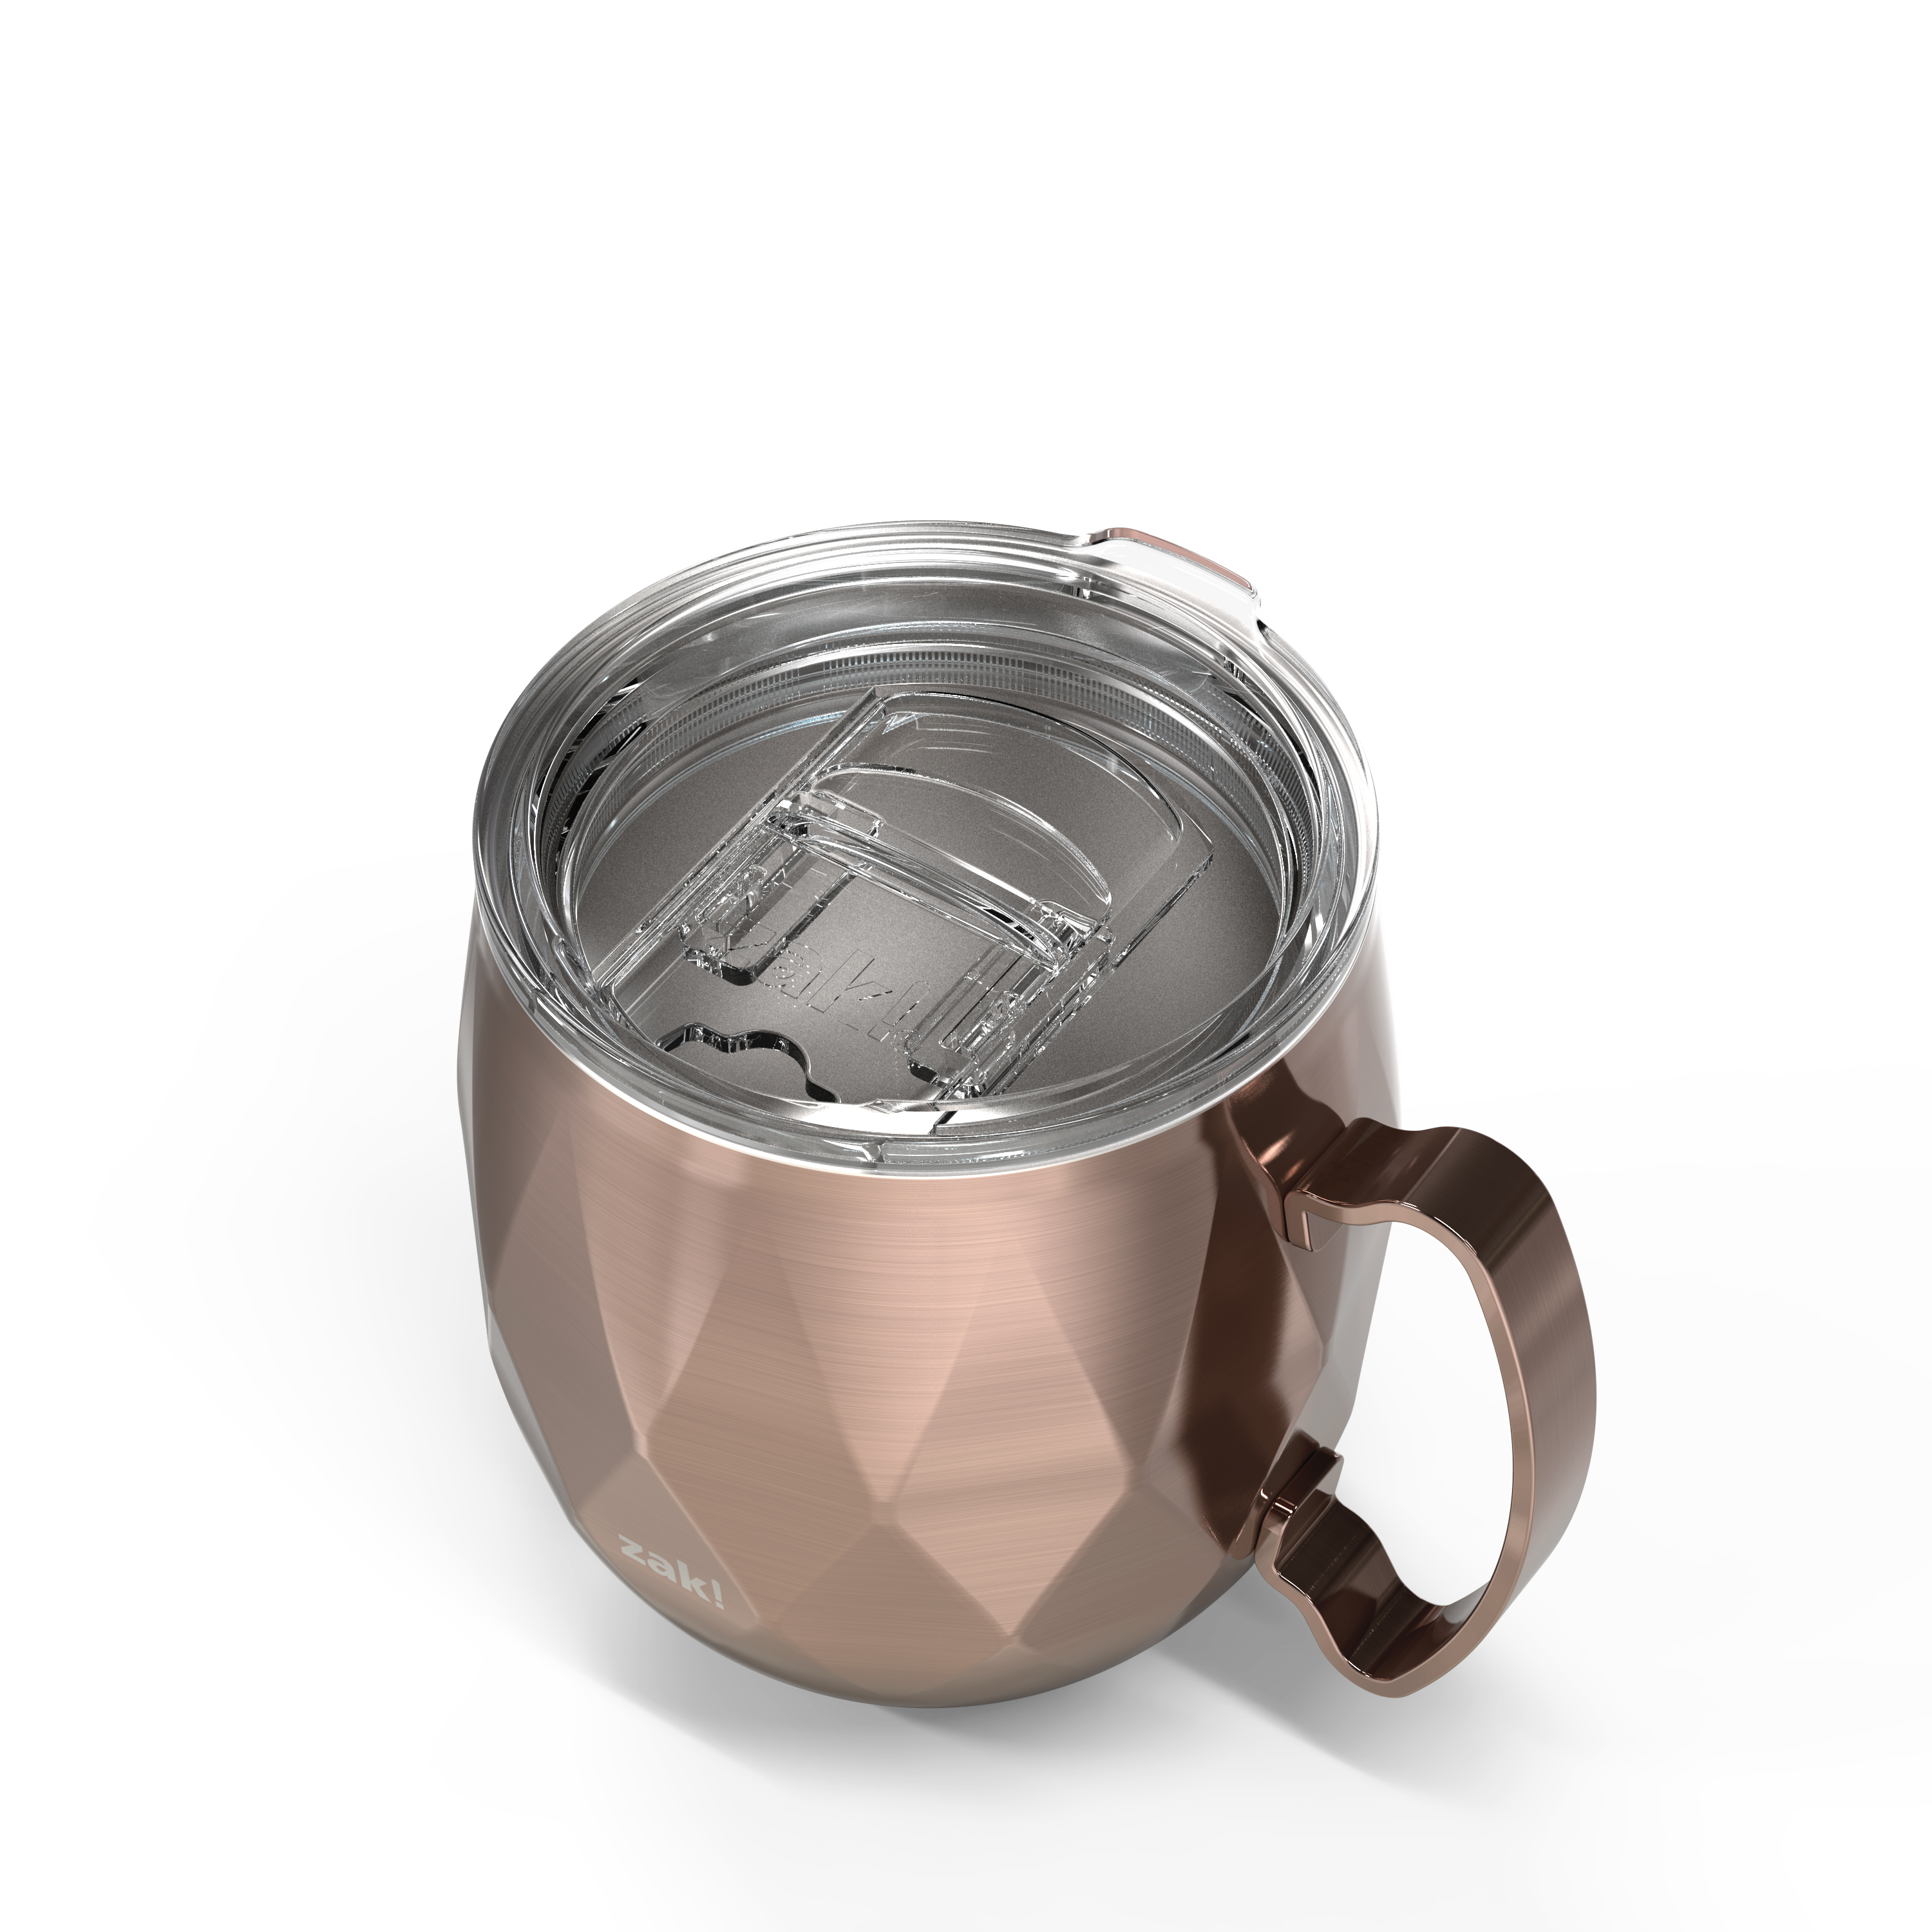 Fractal 19 ounce Vacuum Insulated Stainless Steel Mule Mug, Rose Gold slideshow image 4